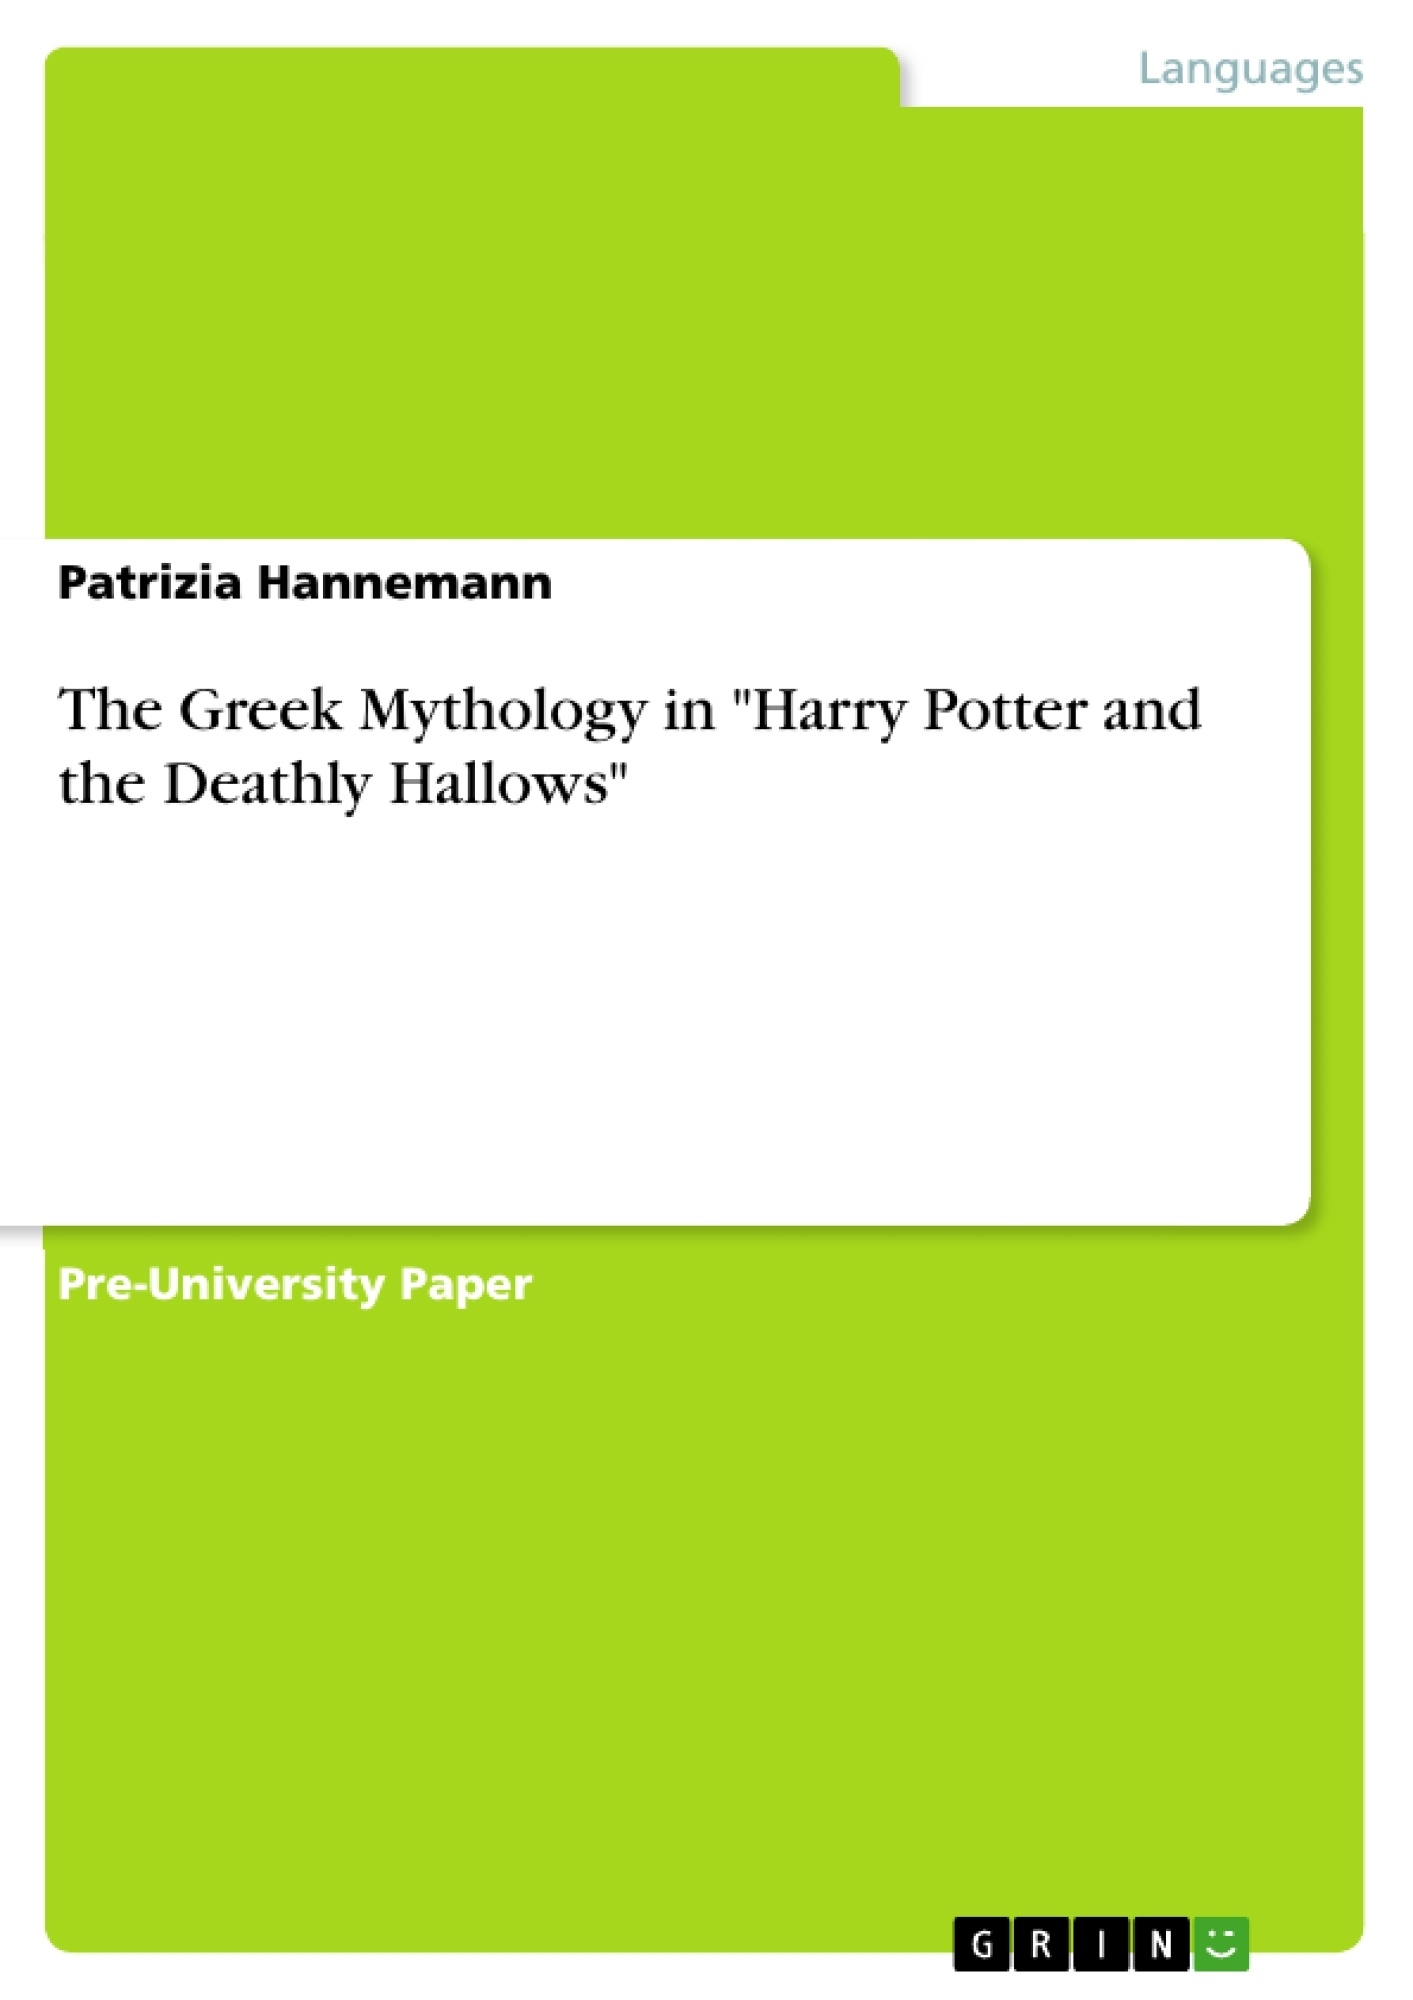 mythology essays greek mythology essay greek mythology essay  the greek mythology in harry potter and the deathly hallows the greek mythology in harry potter